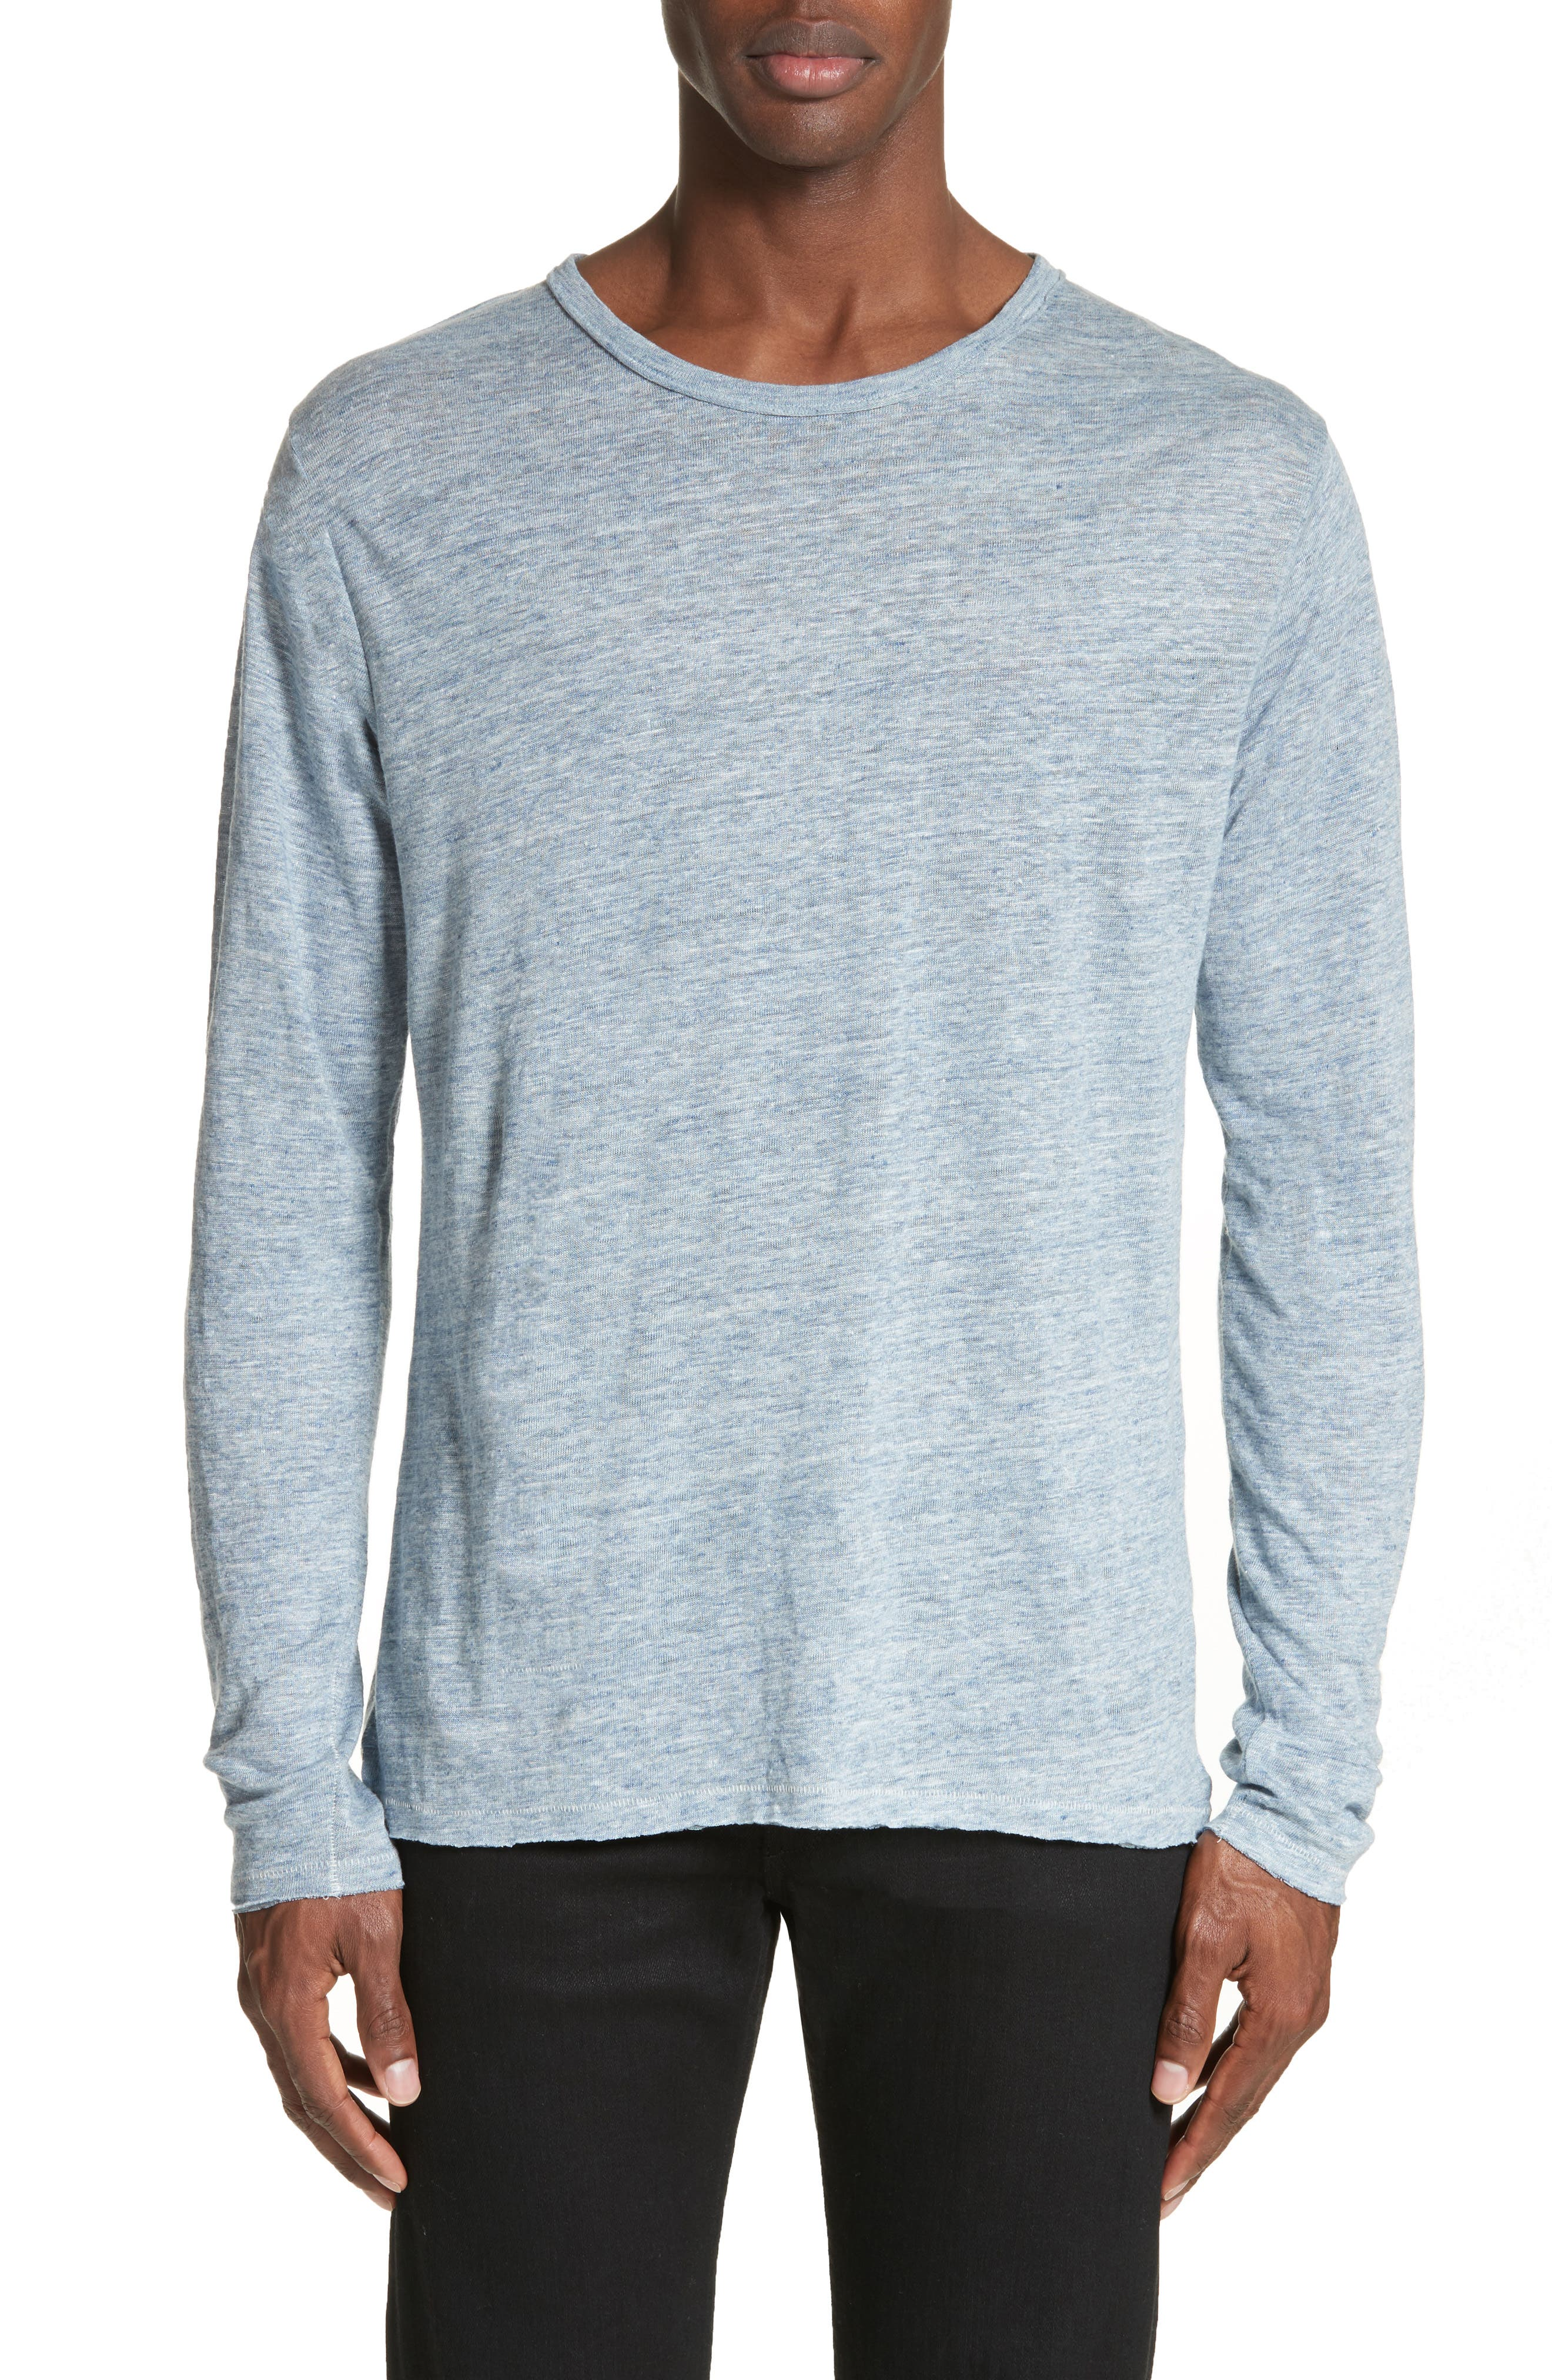 Owen Linen Long Sleeve T-Shirt,                             Main thumbnail 3, color,